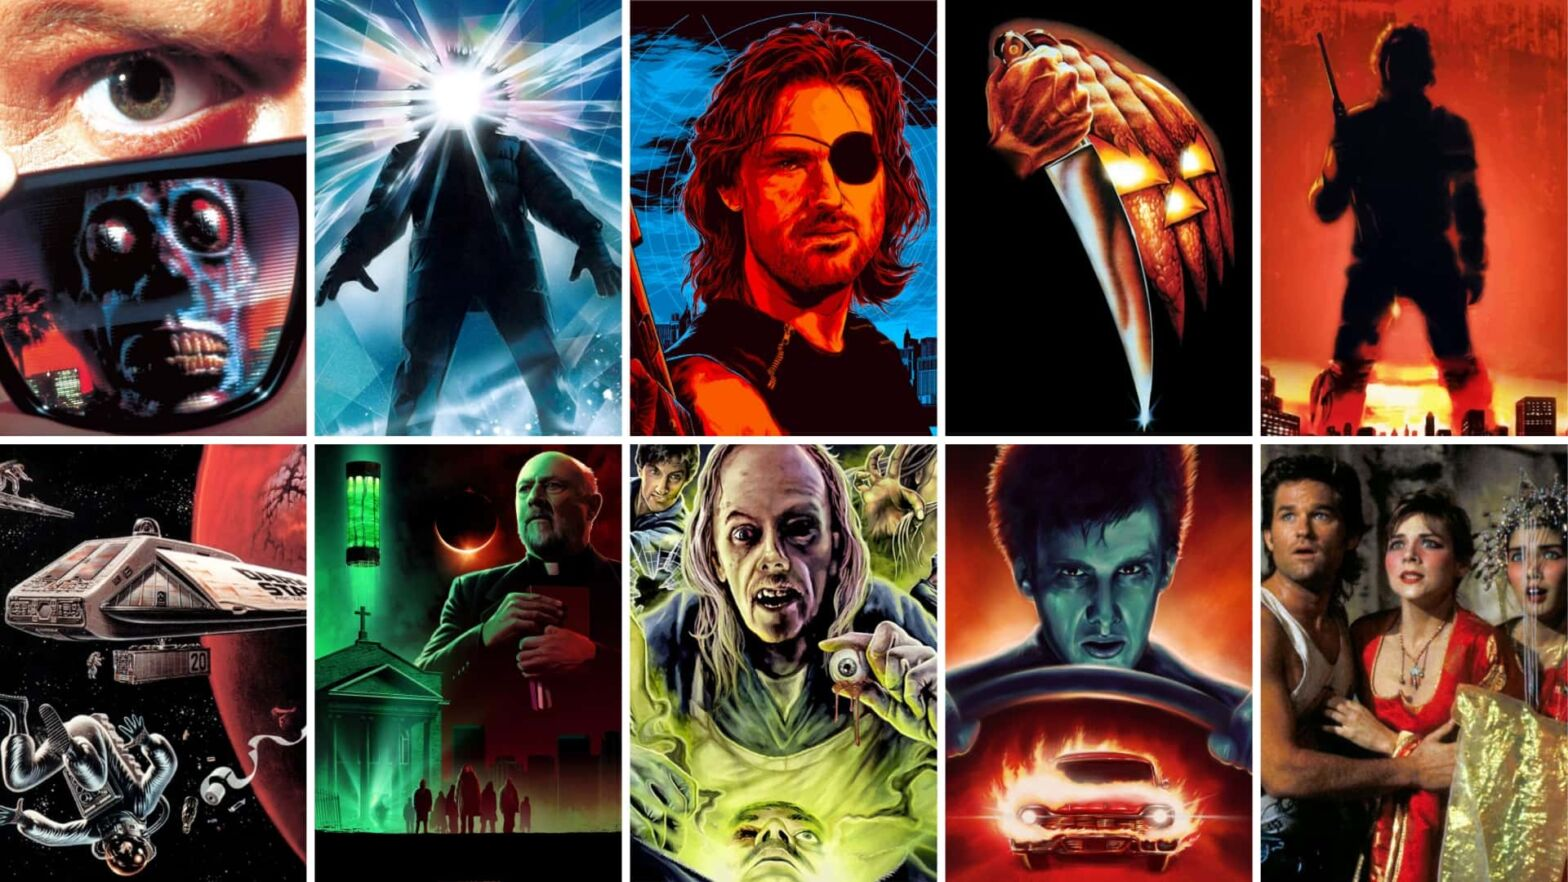 Best John Carpenter Movies — The Master of the Macabre - Featured